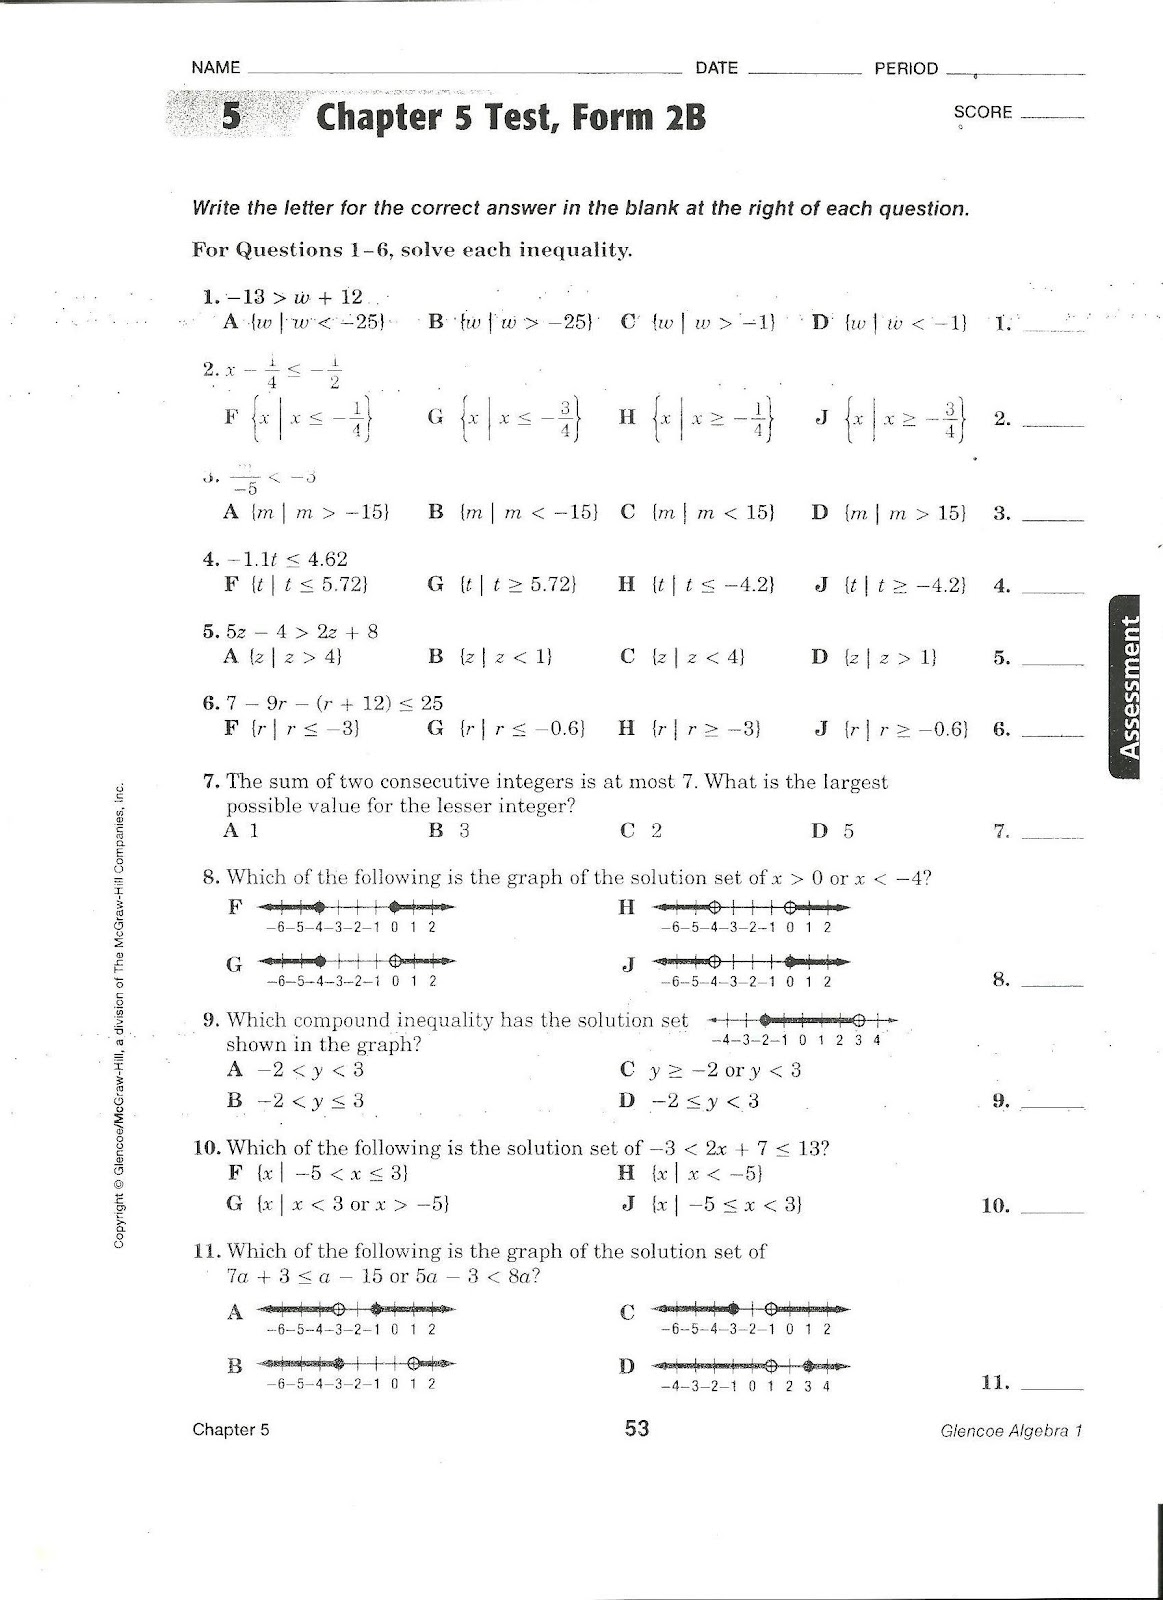 Coach Gober S Algebra Class Chapter 5 Test Form 2b